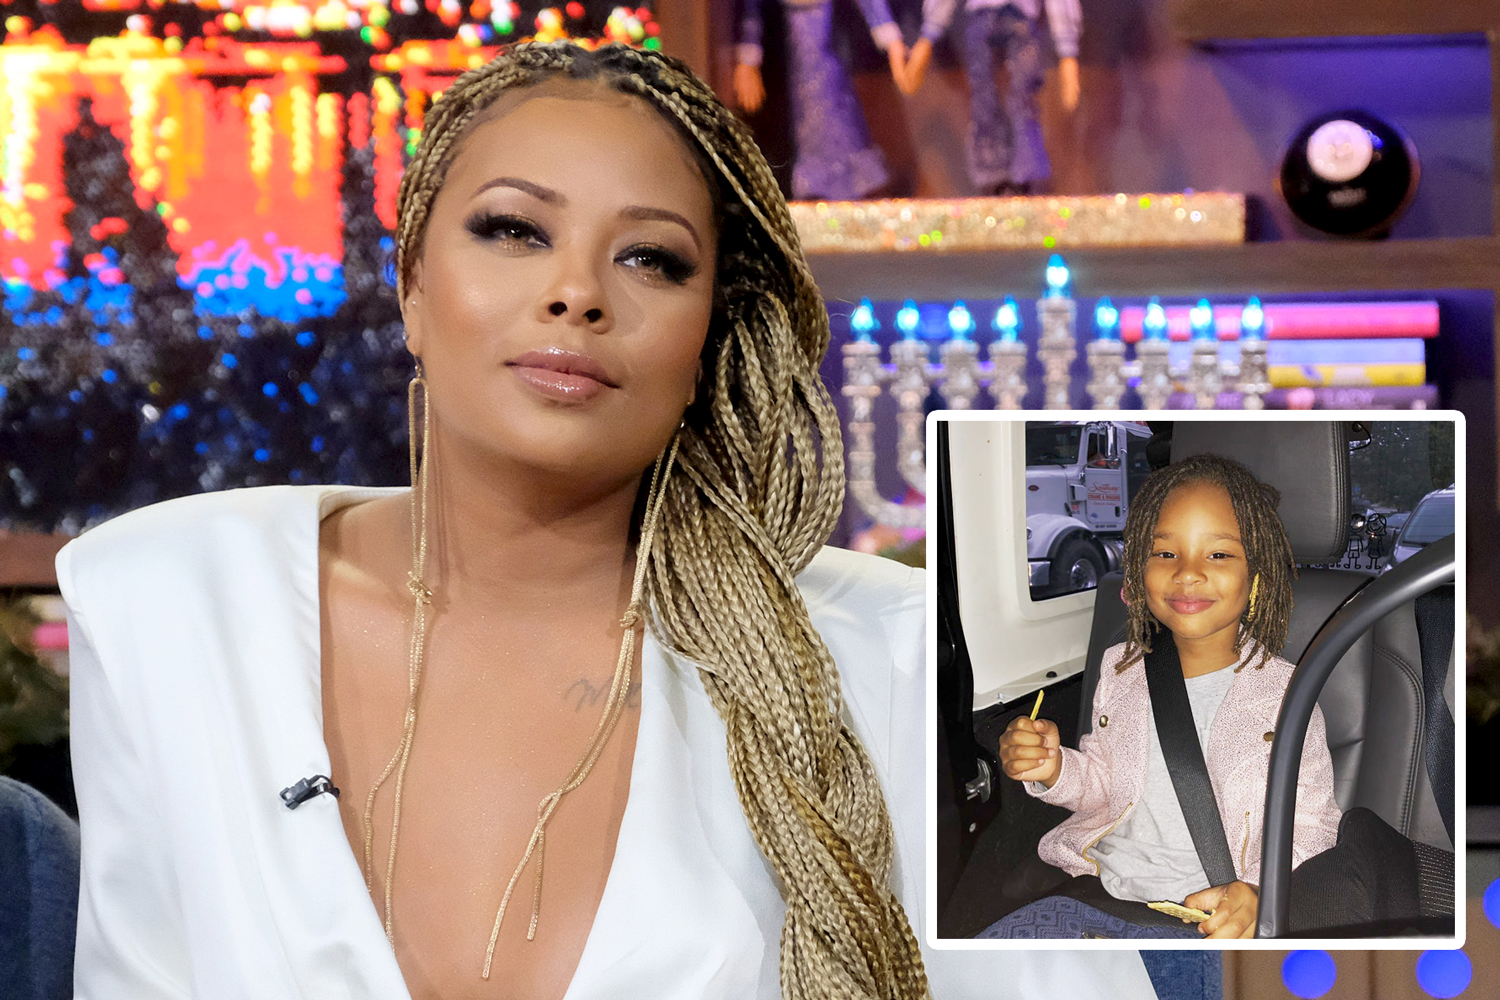 Eva Marcille's Video Of Her baby Girl Marley Makes Fans Smile - Watch It Here